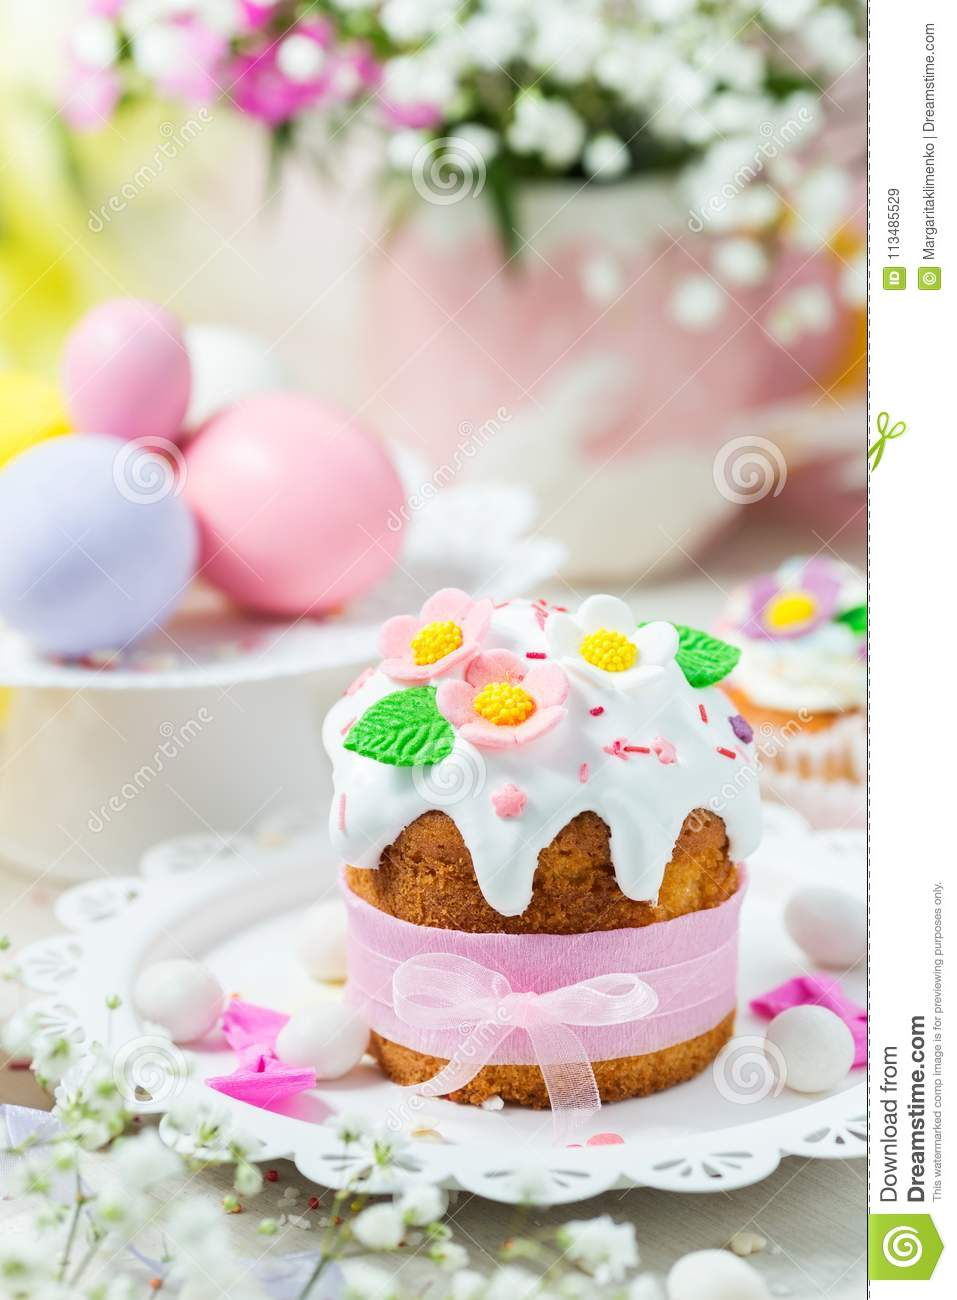 Traditional Easter Cake With White Icing Decorated Sugar Flowers And